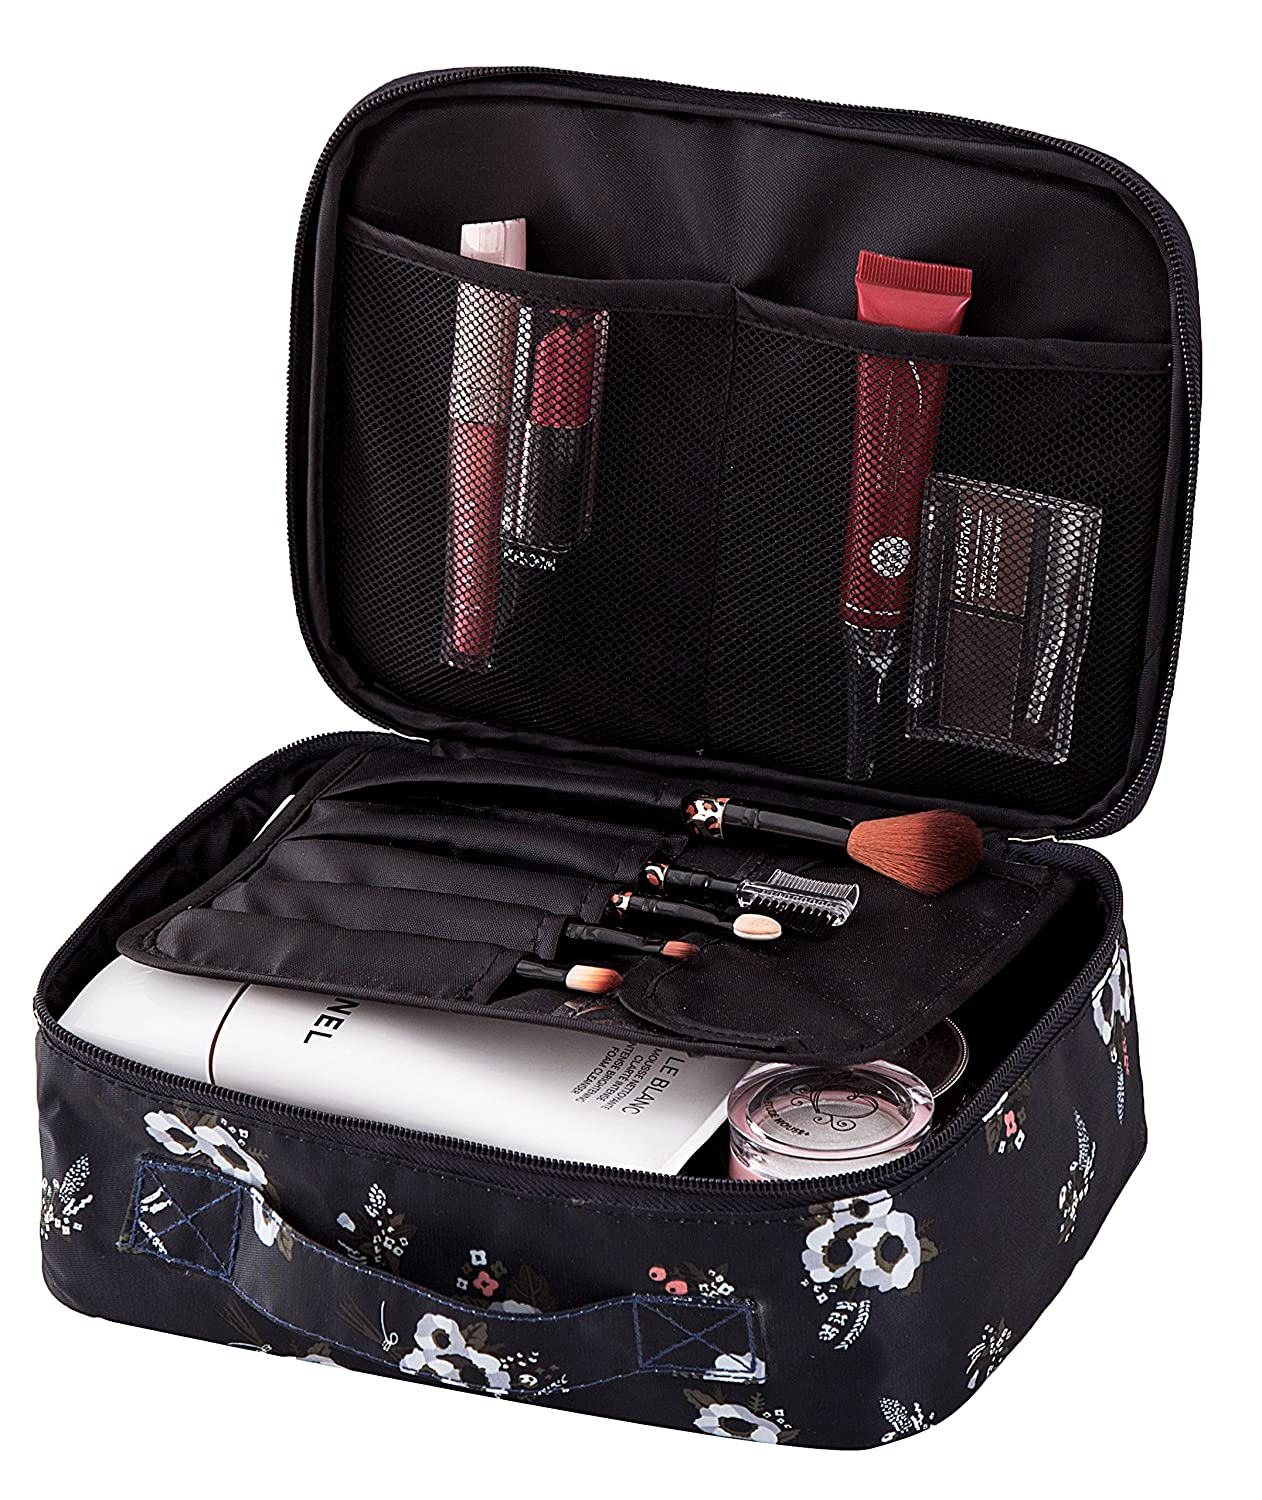 Travel Makeup Cosmetic Case,Portable Brushes Case Toiletry Bag Travel Kit Organizer Cosmetic Bag Black Flower A